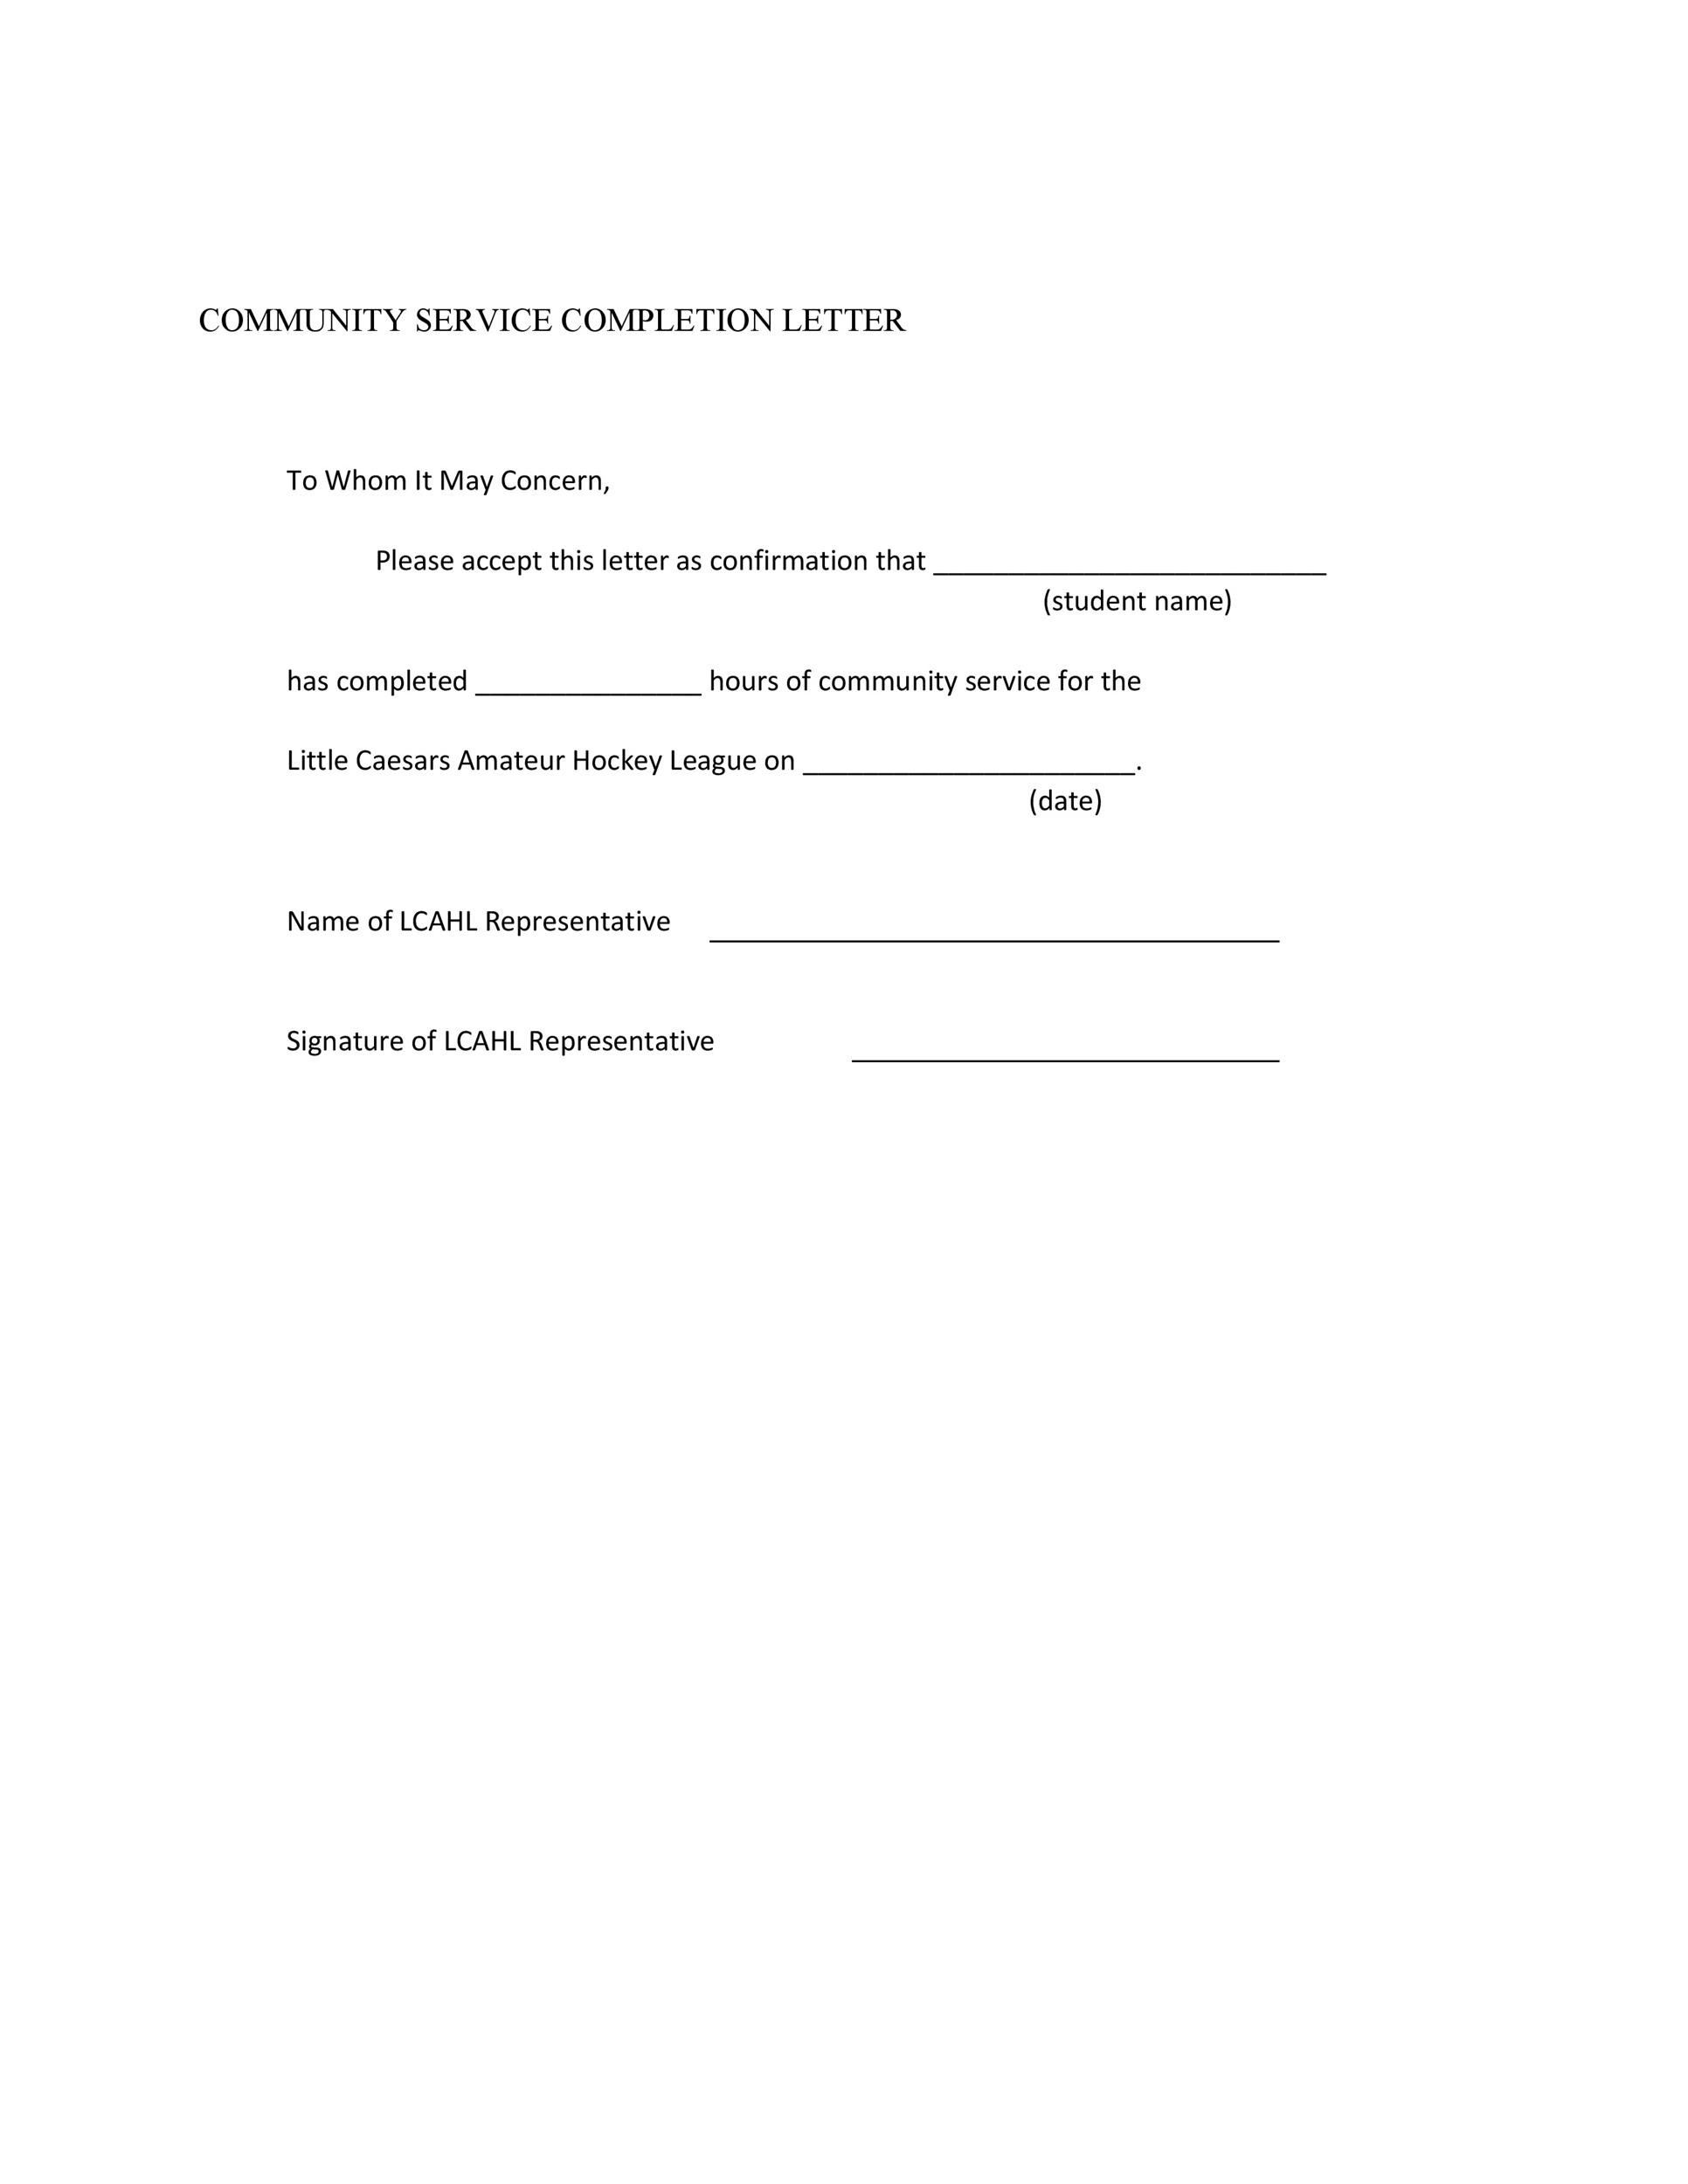 community service letter template for students Community Service Letter - 40  Templates [Completion, Verification]